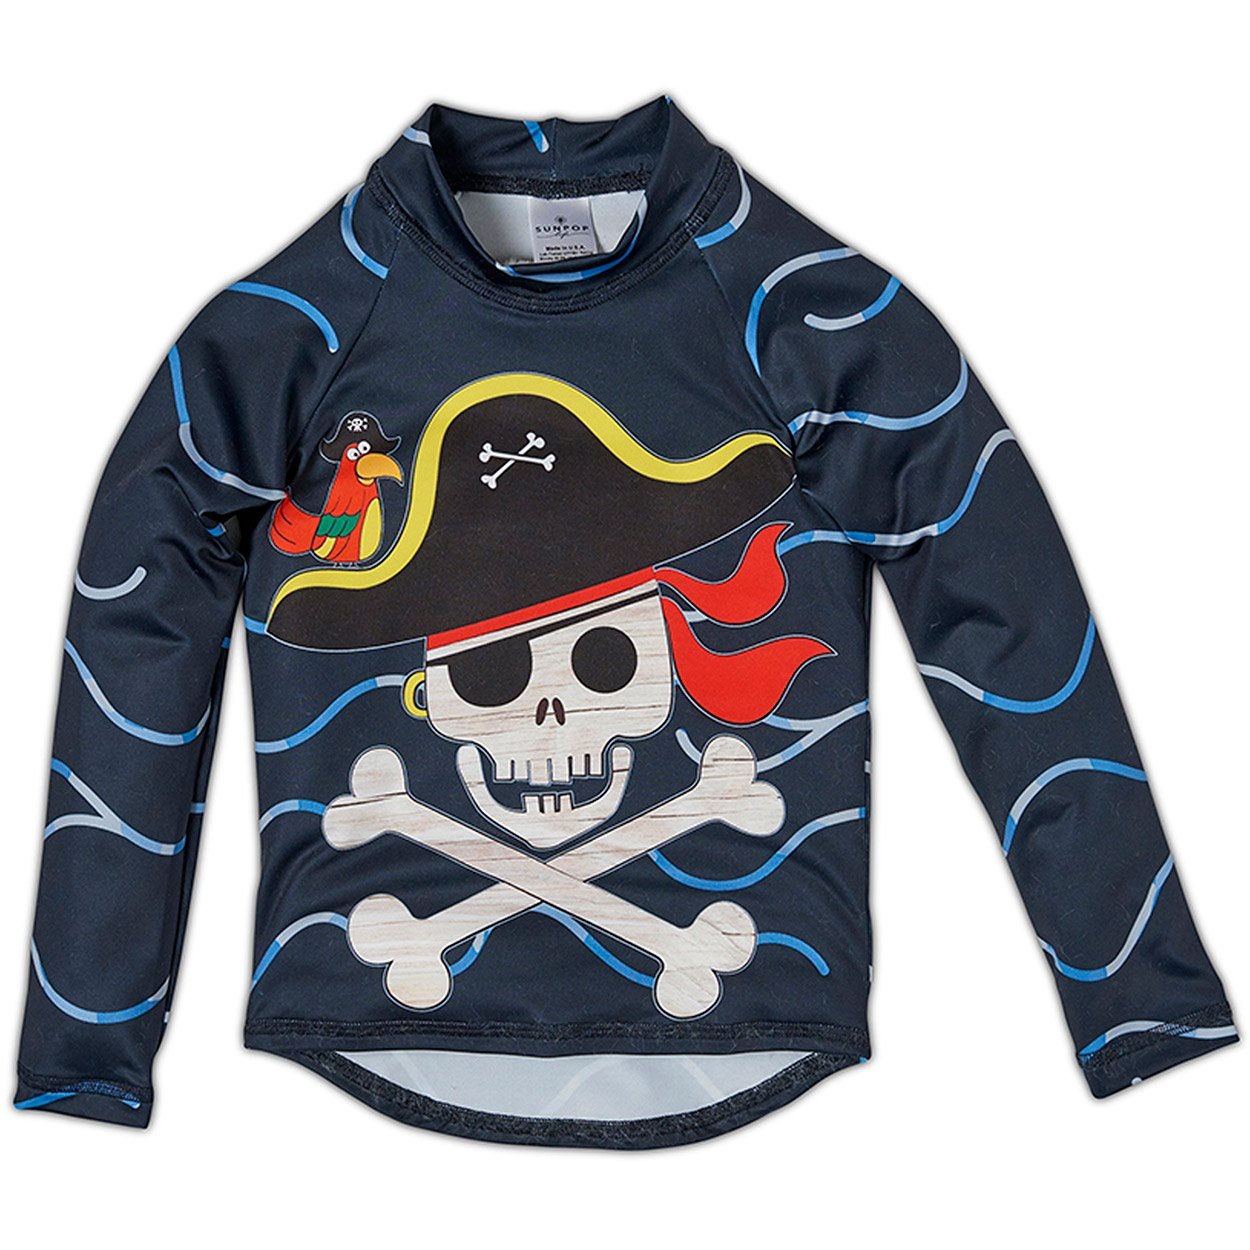 Fun Pirate Rash Guard Top UPF 50+ for Boys